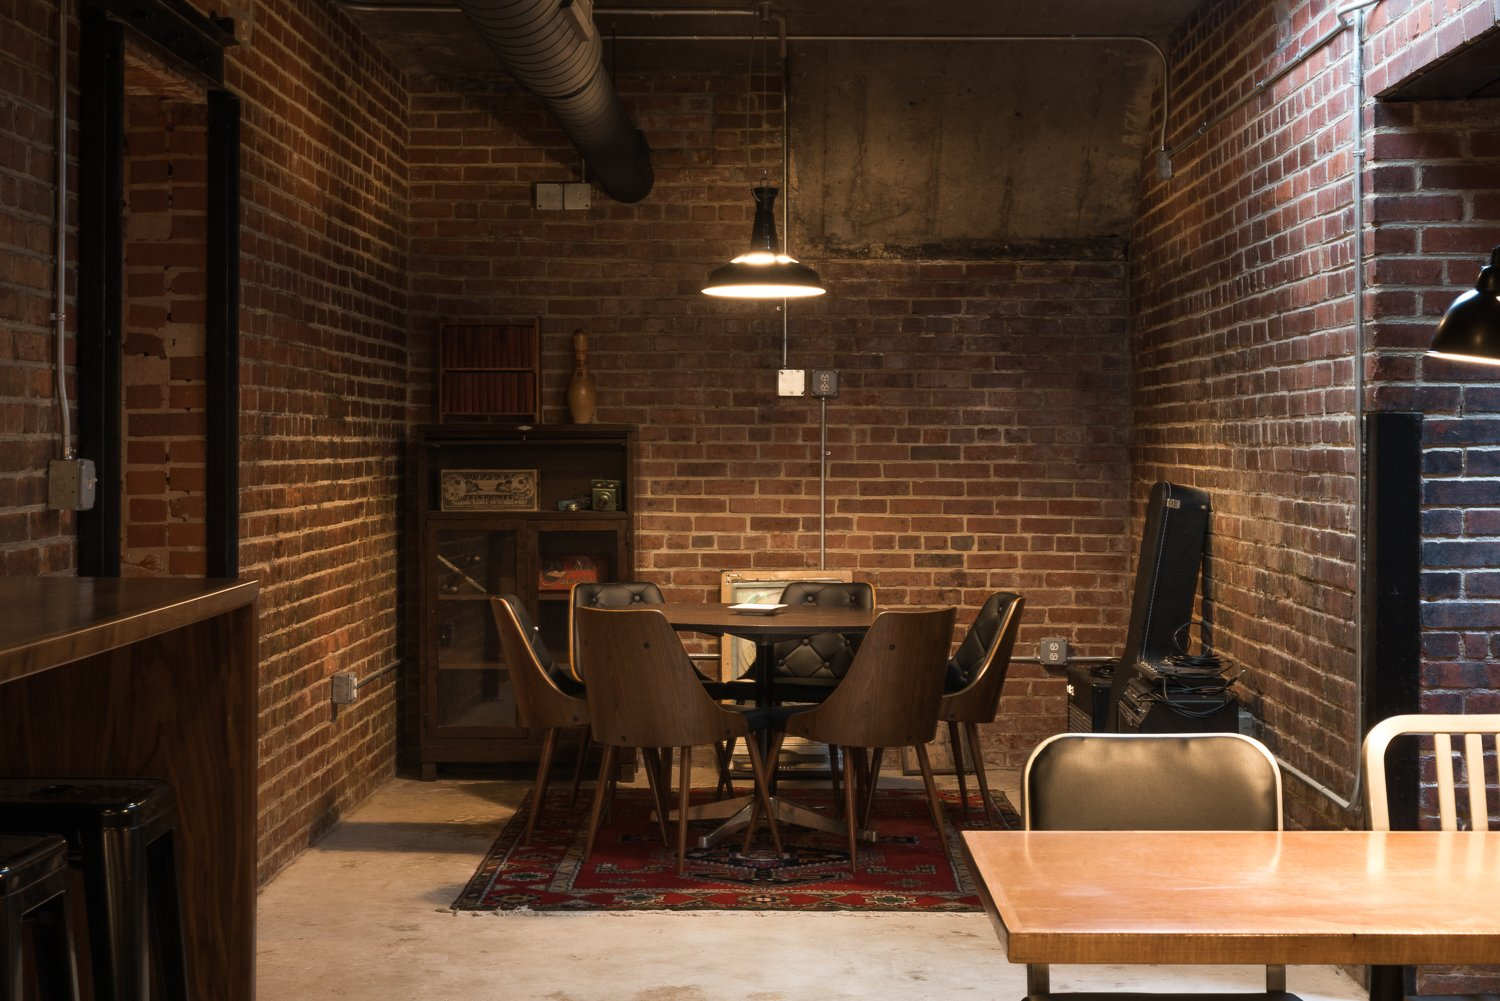 Photo 14 of 16 in A Historic U.S. Post Office Is Transformed Into a Digital Agency's New Modern Office